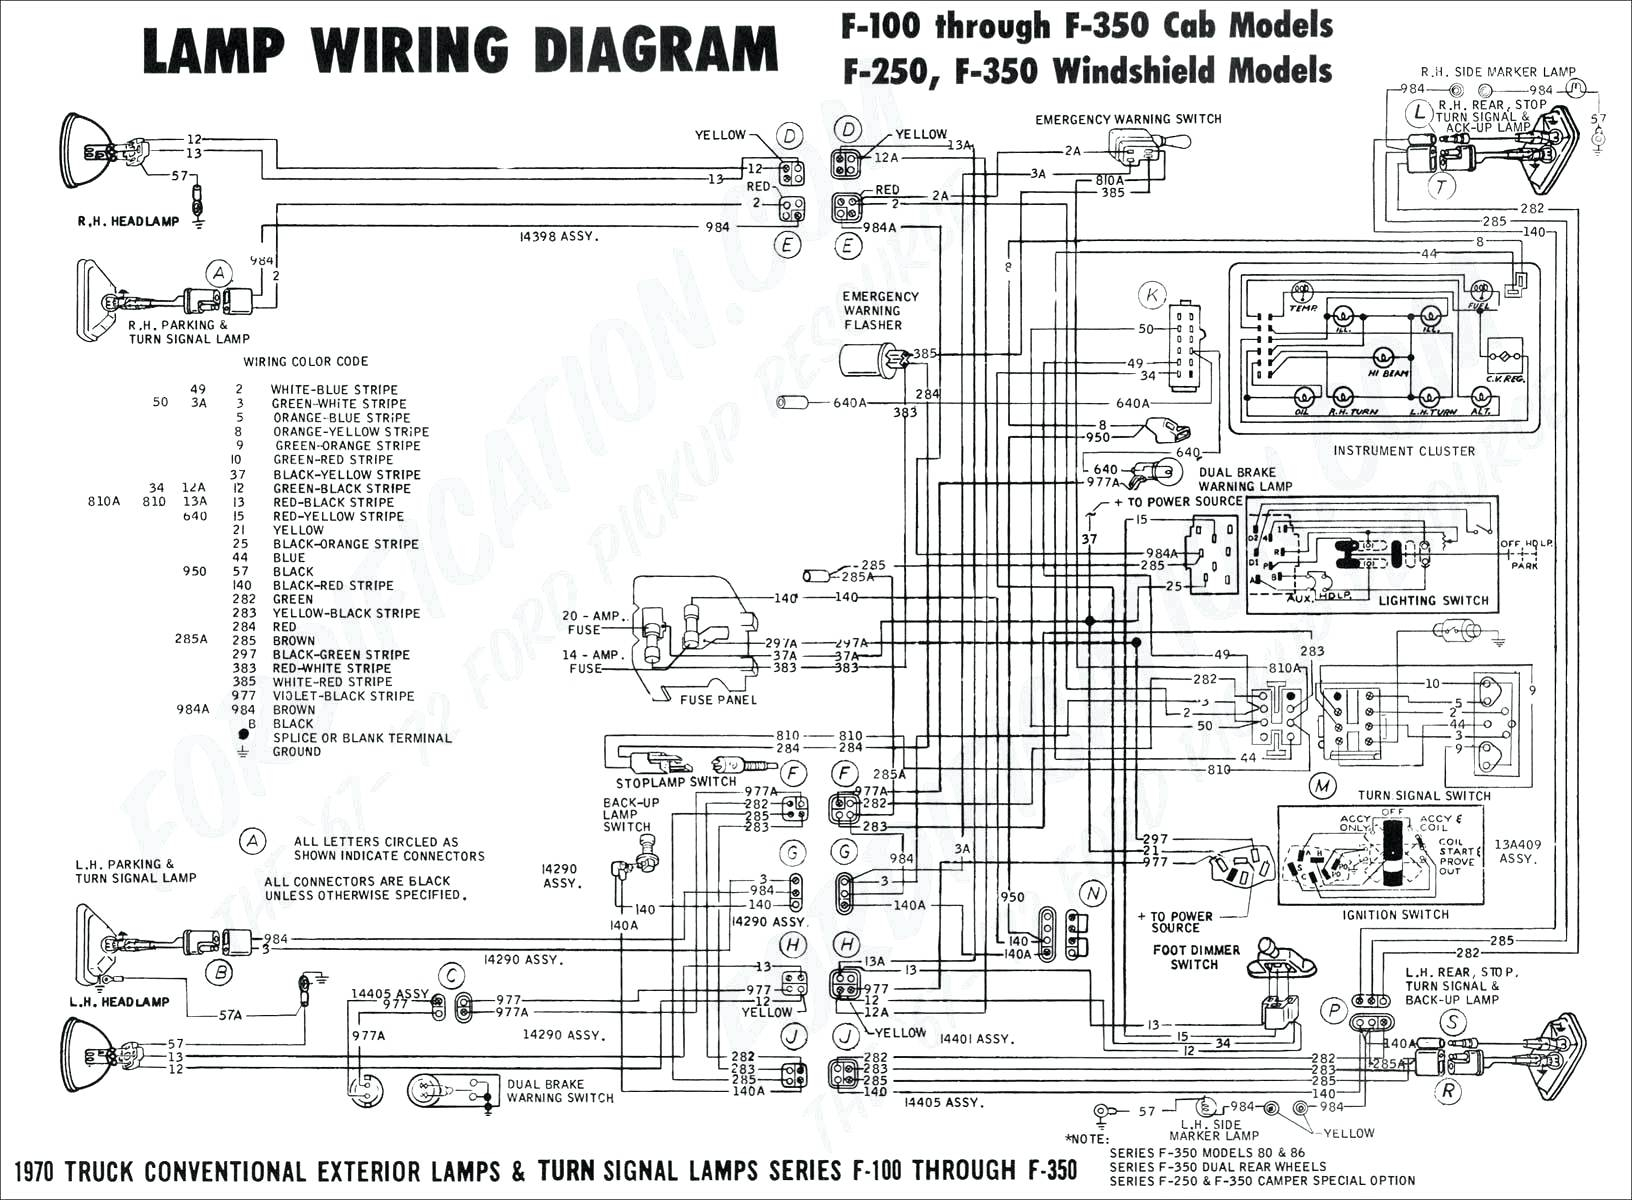 1999 ford f250 trailer wiring diagram Collection-2000 F250 Trailer Wiring Diagram Collection 1986 Ford F350 Wiring Diagram Fresh 1999 Trailer Inspirational 16-q